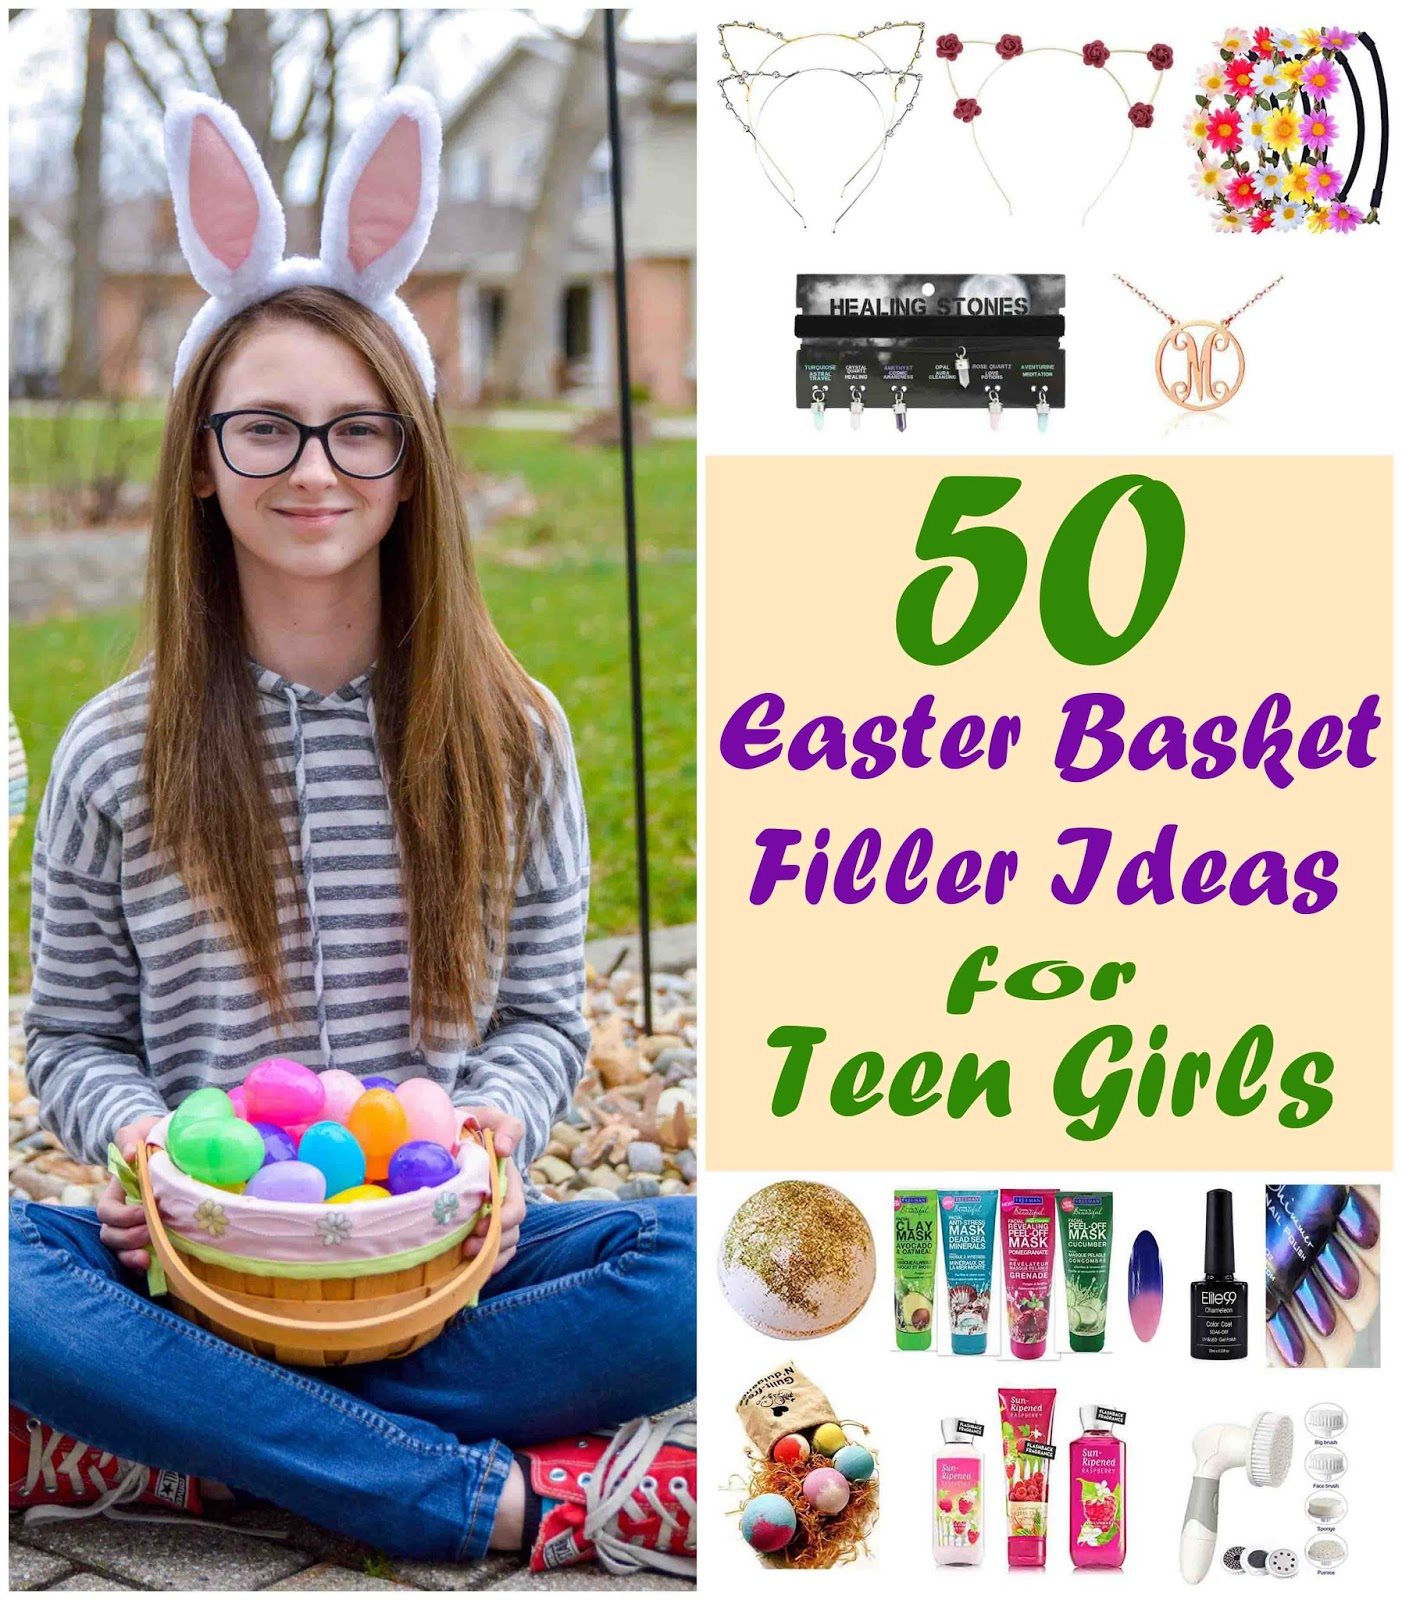 Theresas mixed nuts allisons top 50 easter basket filler picks so without further ado here are allisons top 50 easter basket picks for teen girls negle Images